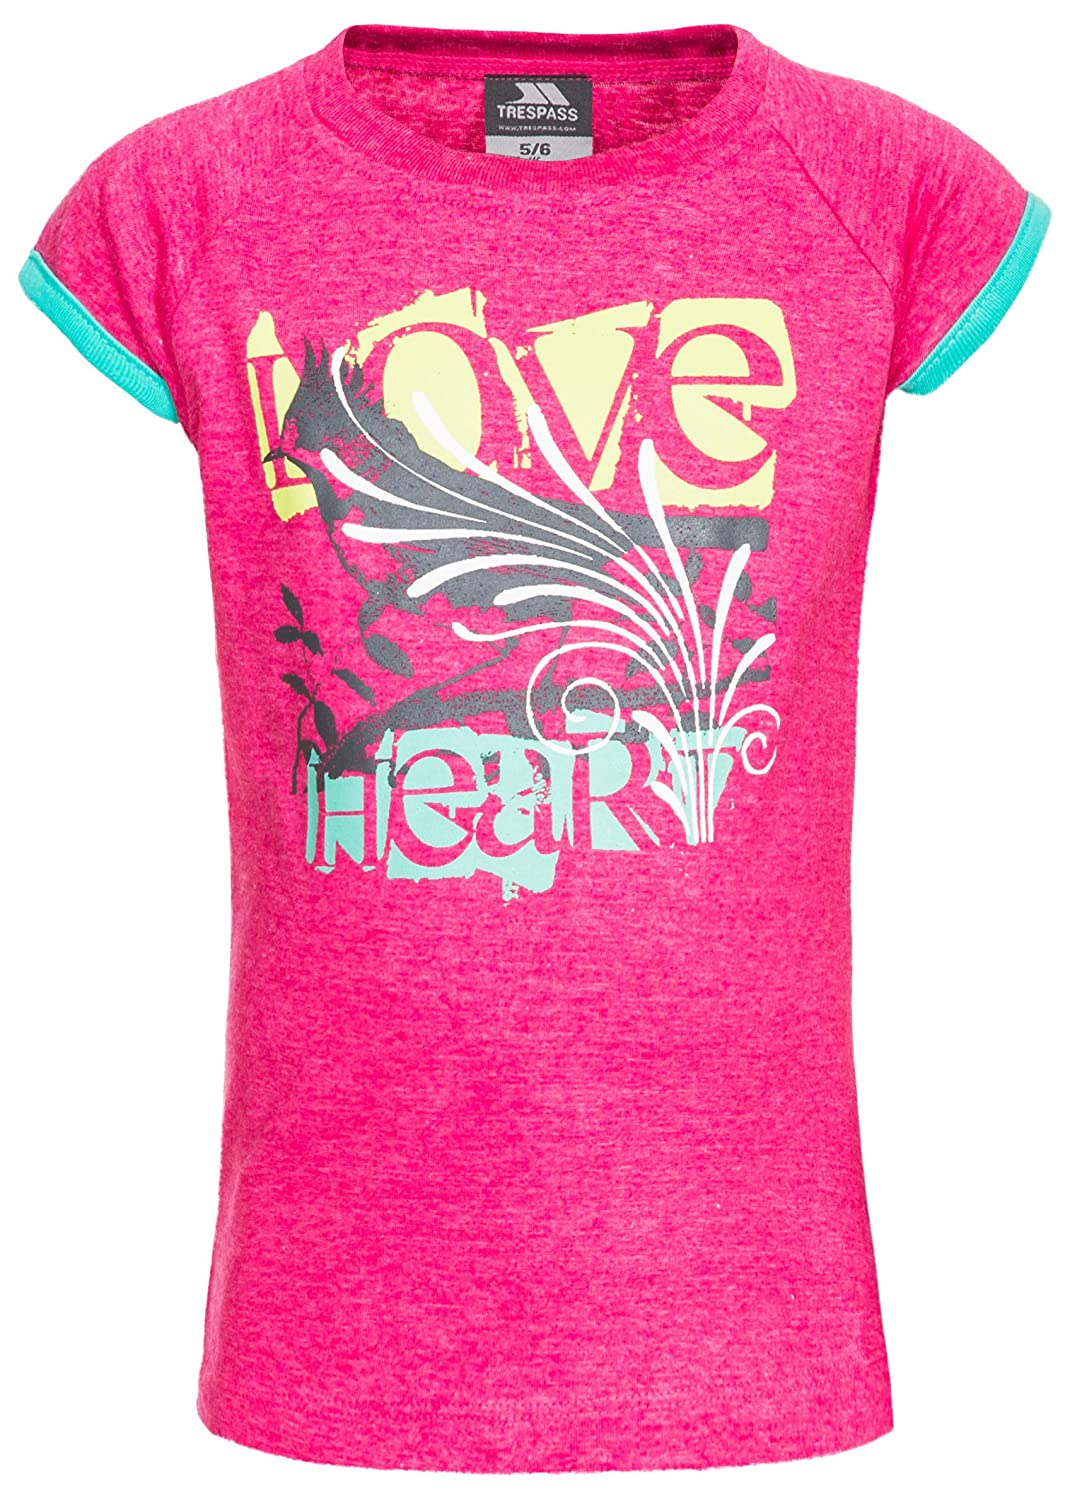 Trespass Kids Lovebird T-Shirt with Cool Frontal Print for Children Girls/Toddlers Ages 2-12 for Outdoor/Fun/Sports/Leisure